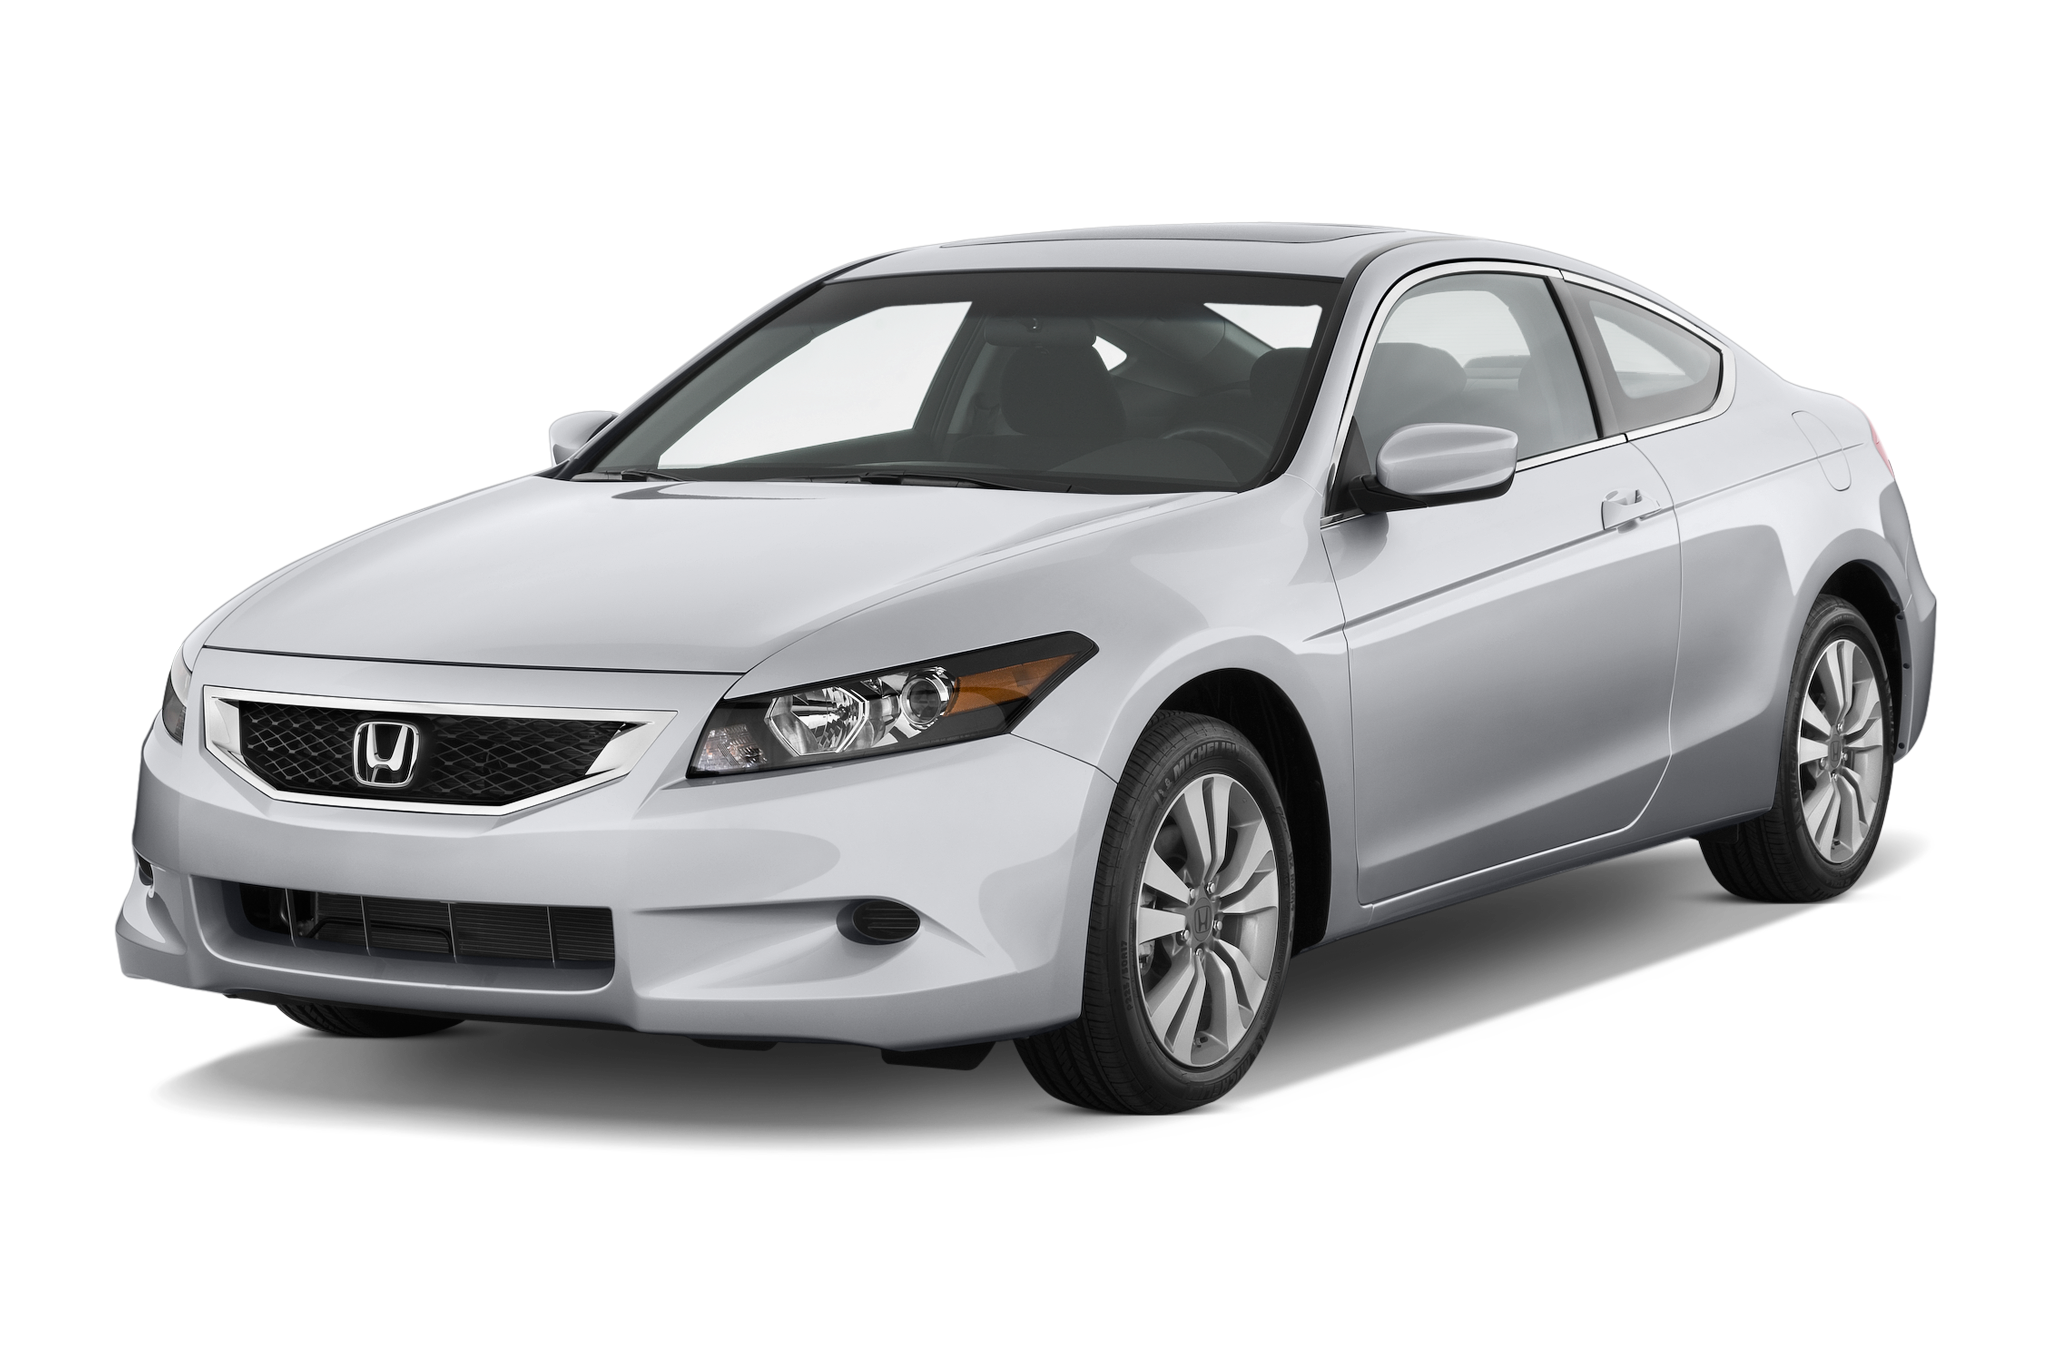 2010 honda accord ex l v6 auto coupe specs and features. Black Bedroom Furniture Sets. Home Design Ideas